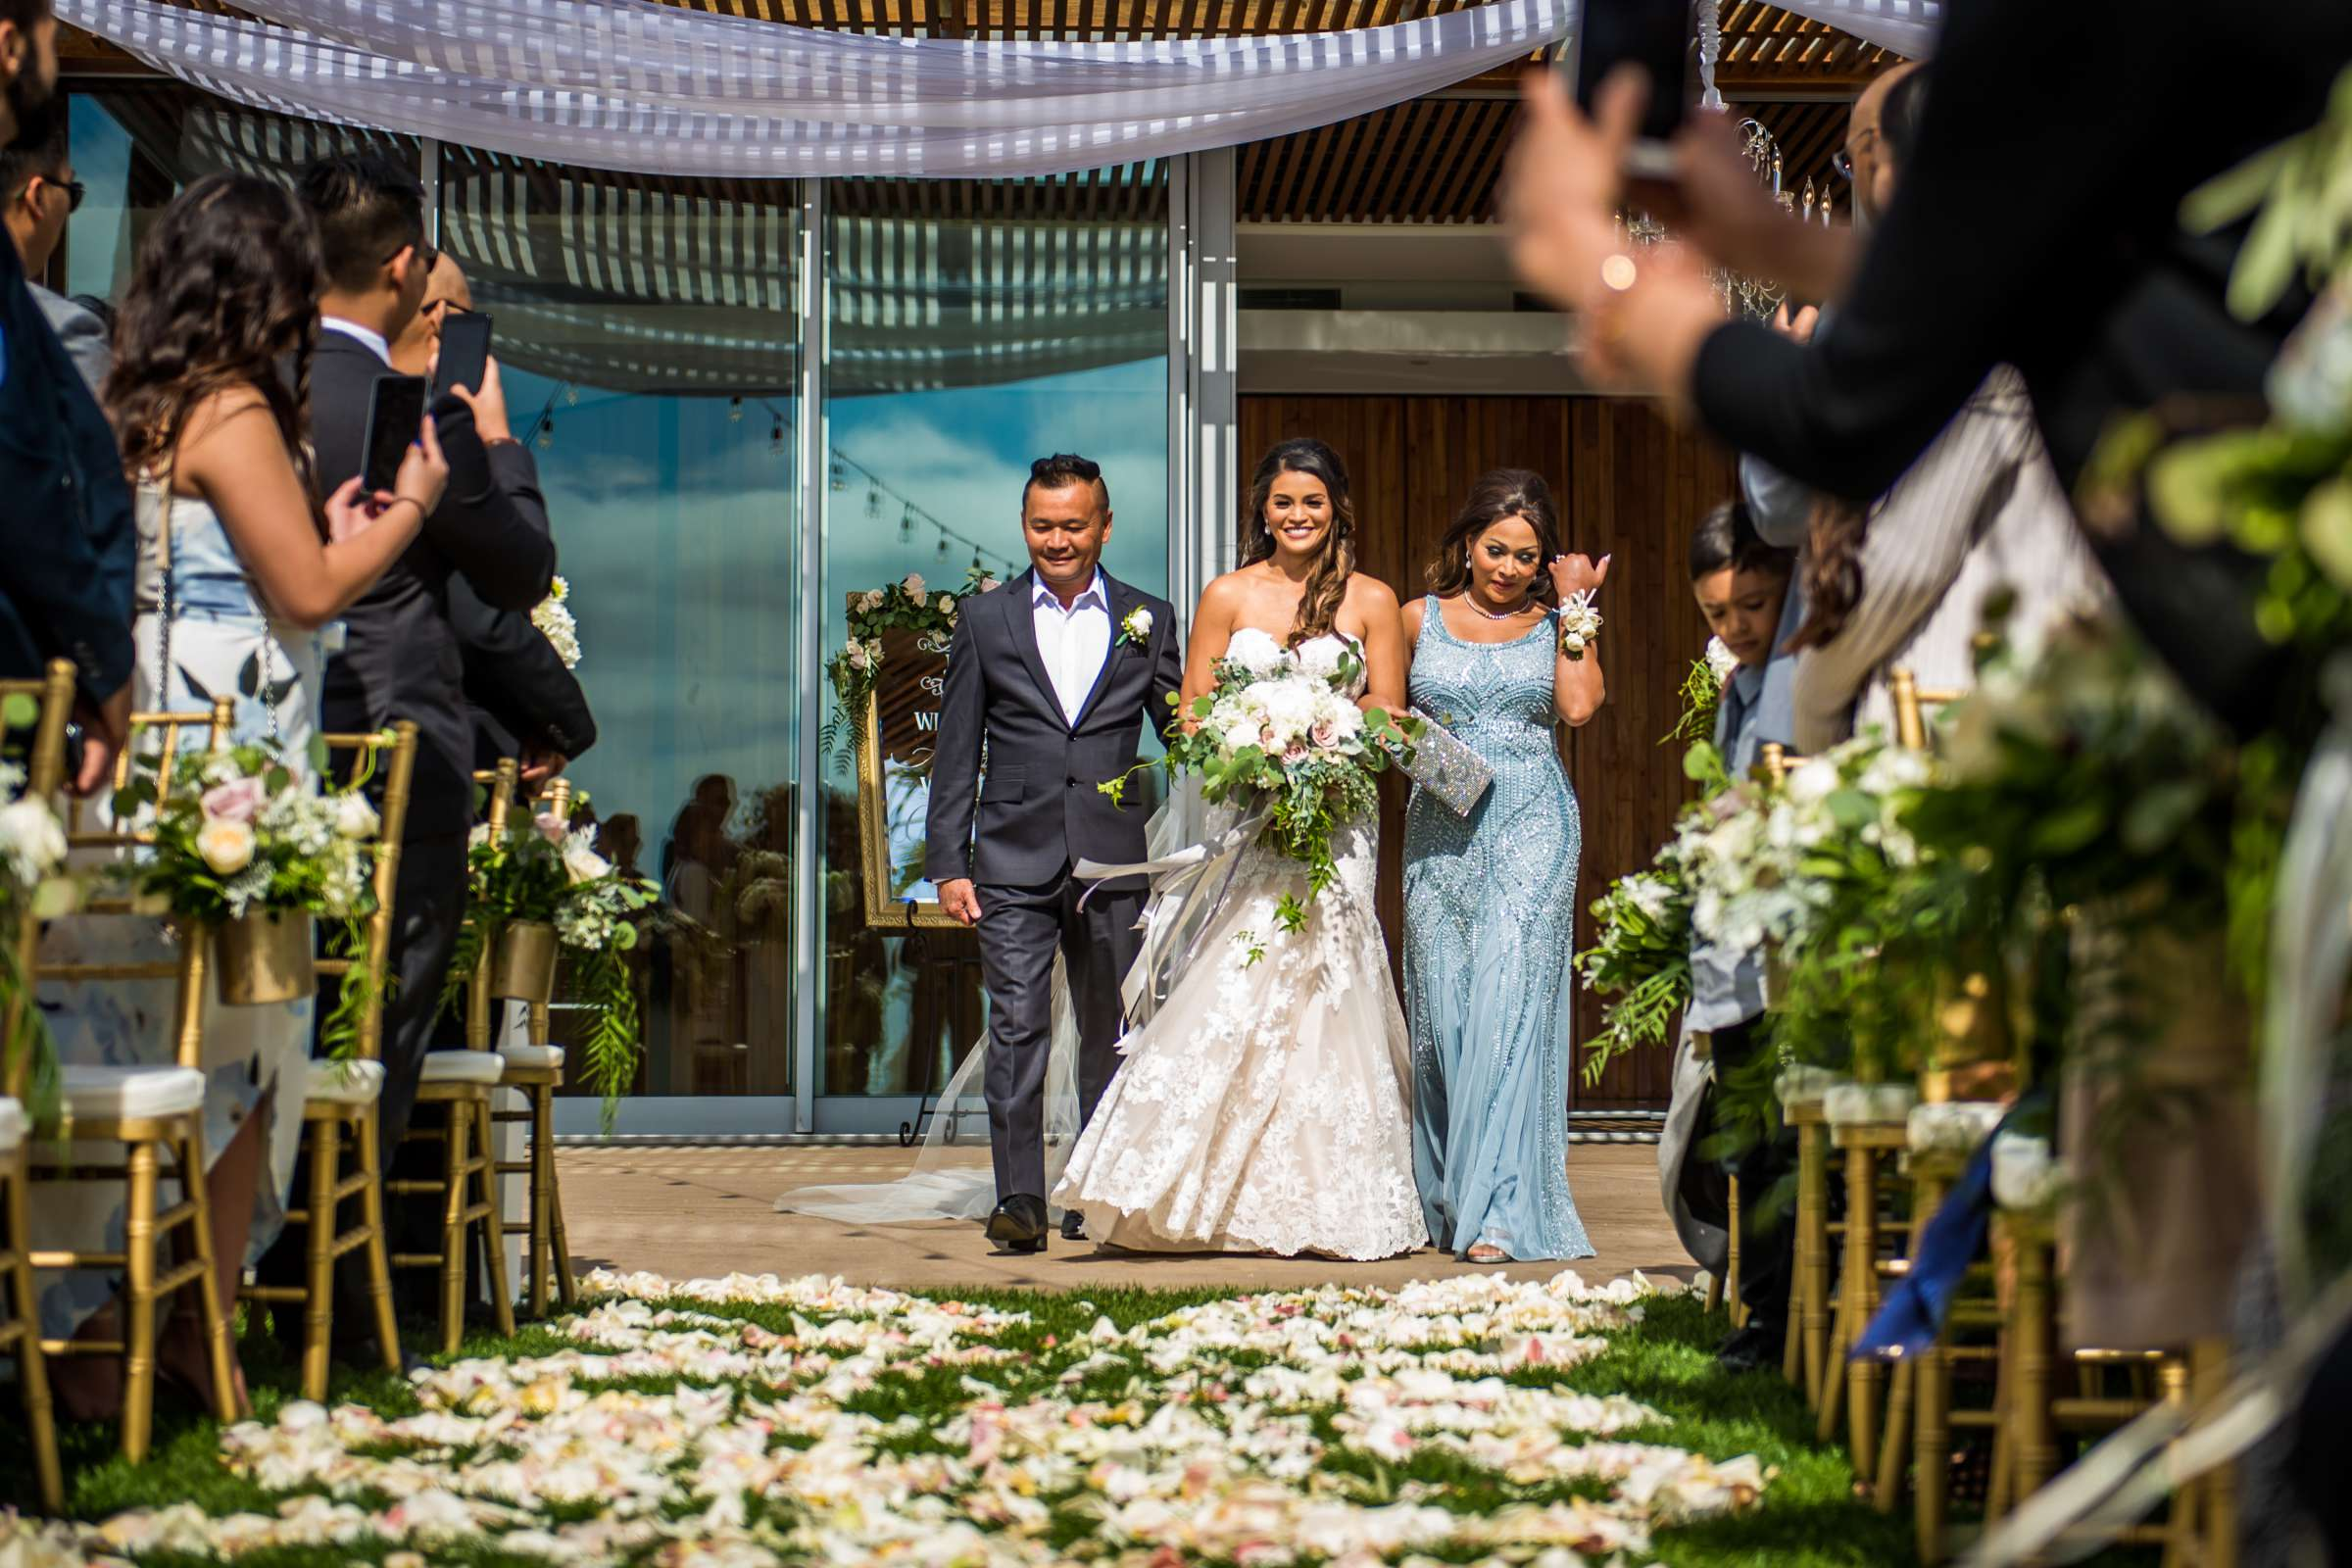 Scripps Seaside Forum Wedding coordinated by Lavish Weddings, Cindy and Justin Wedding Photo #381816 by True Photography